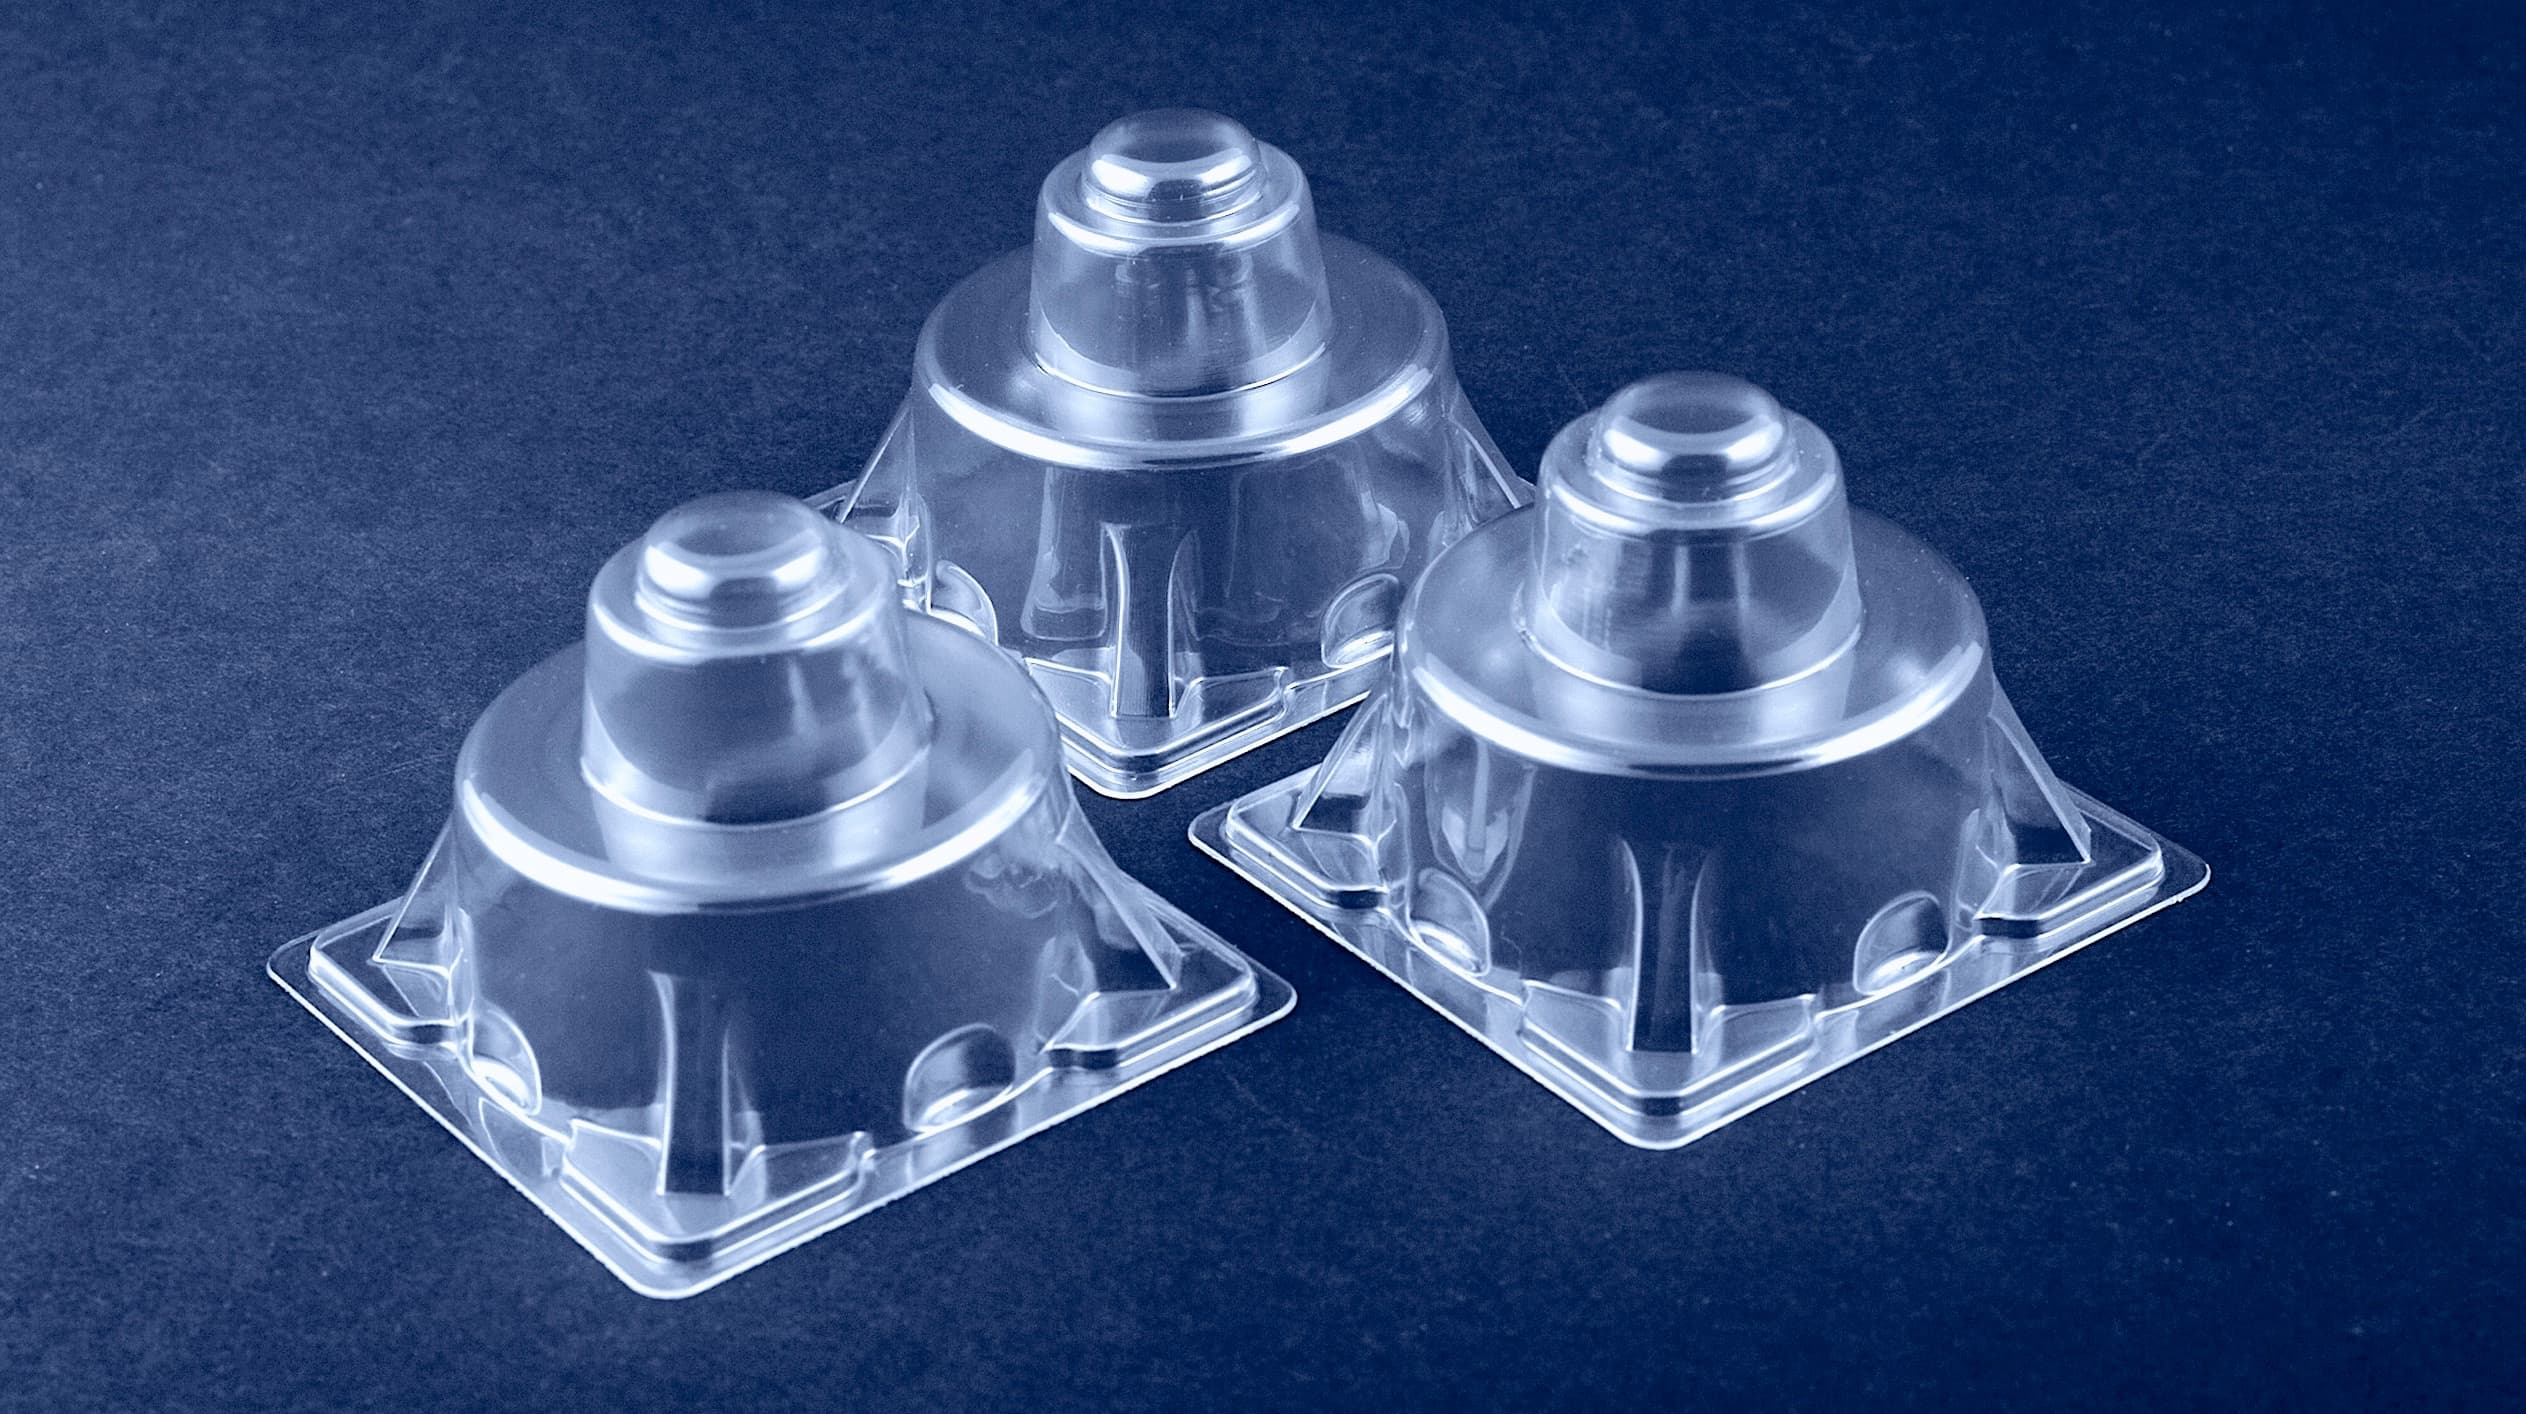 Thermoformed components